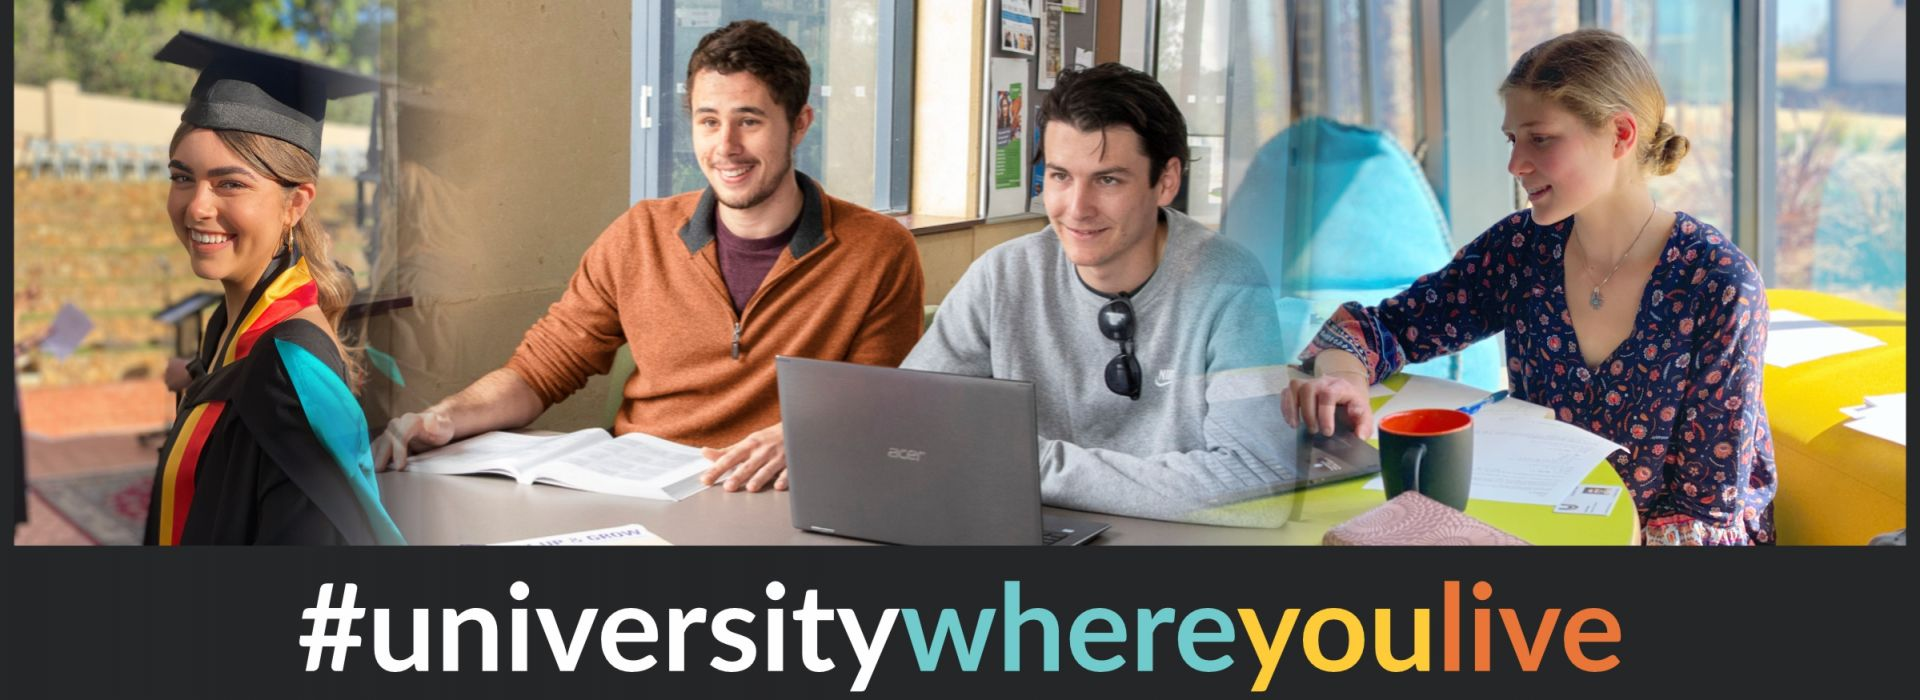 GUC 2021 university where you live banner WEB 2400px